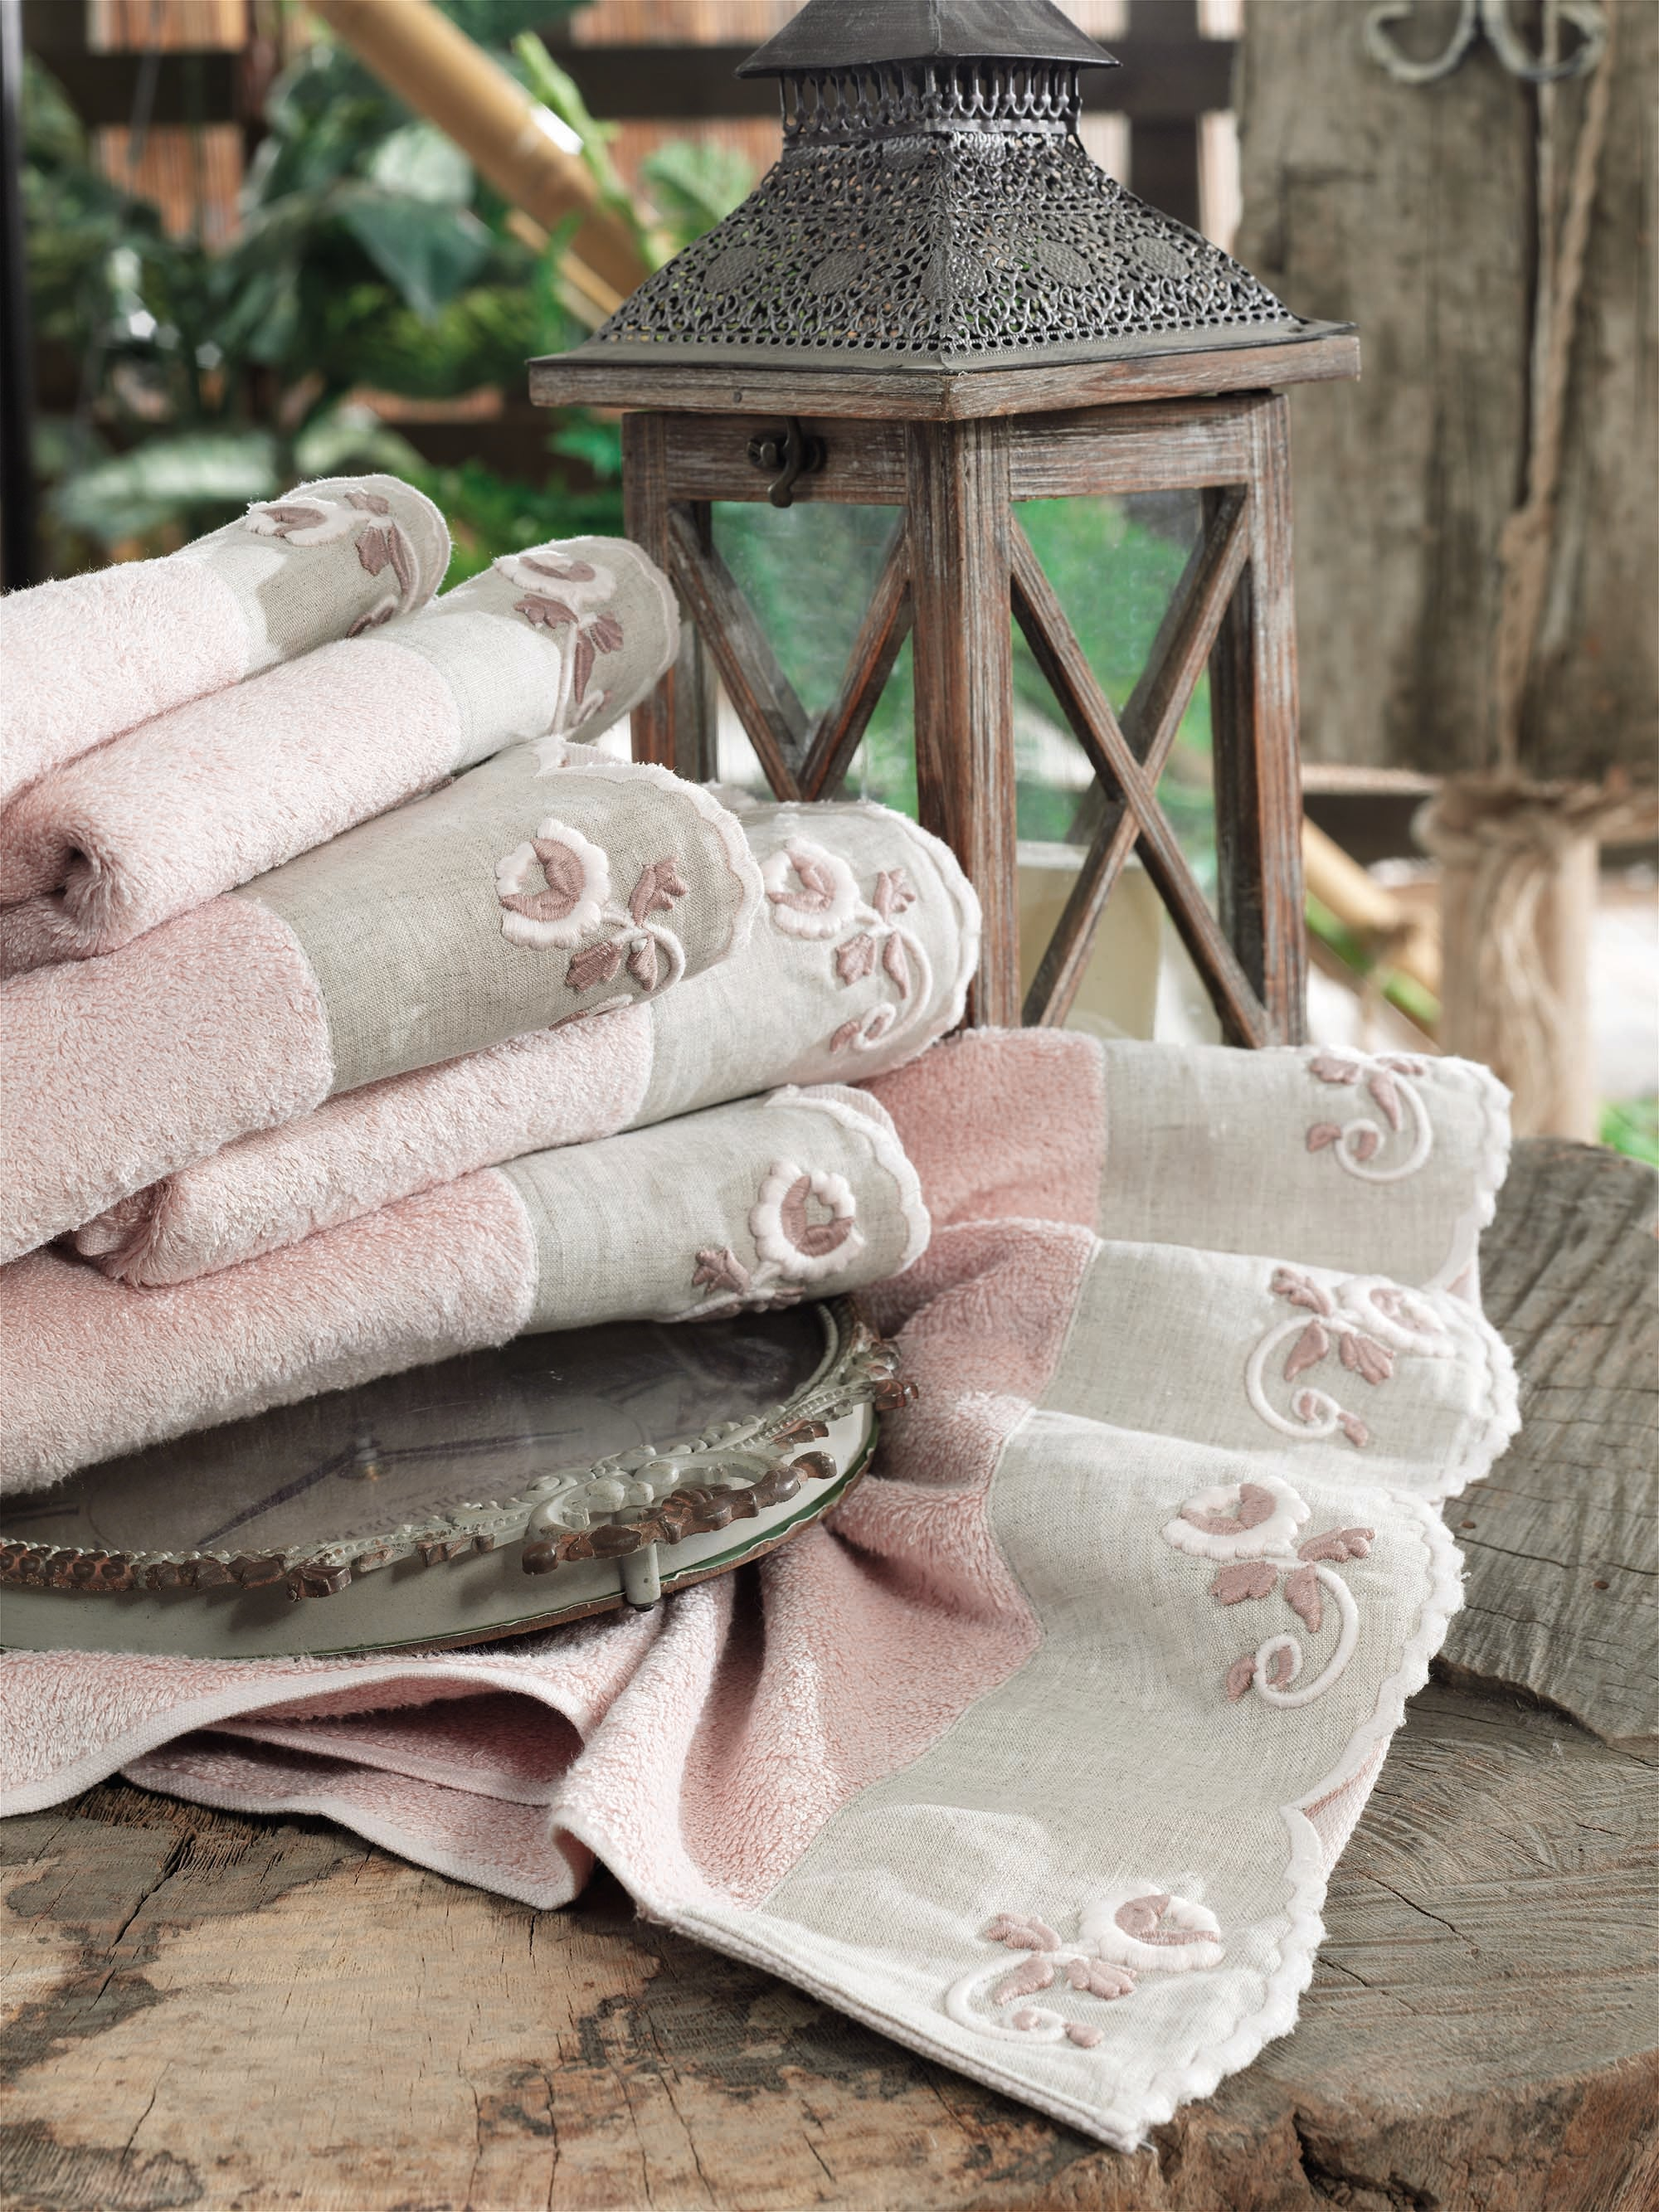 TURKISH BAMBOO ELEGANT TOWEL WITH SPECIAL EMBROIDERY - COTTONISH